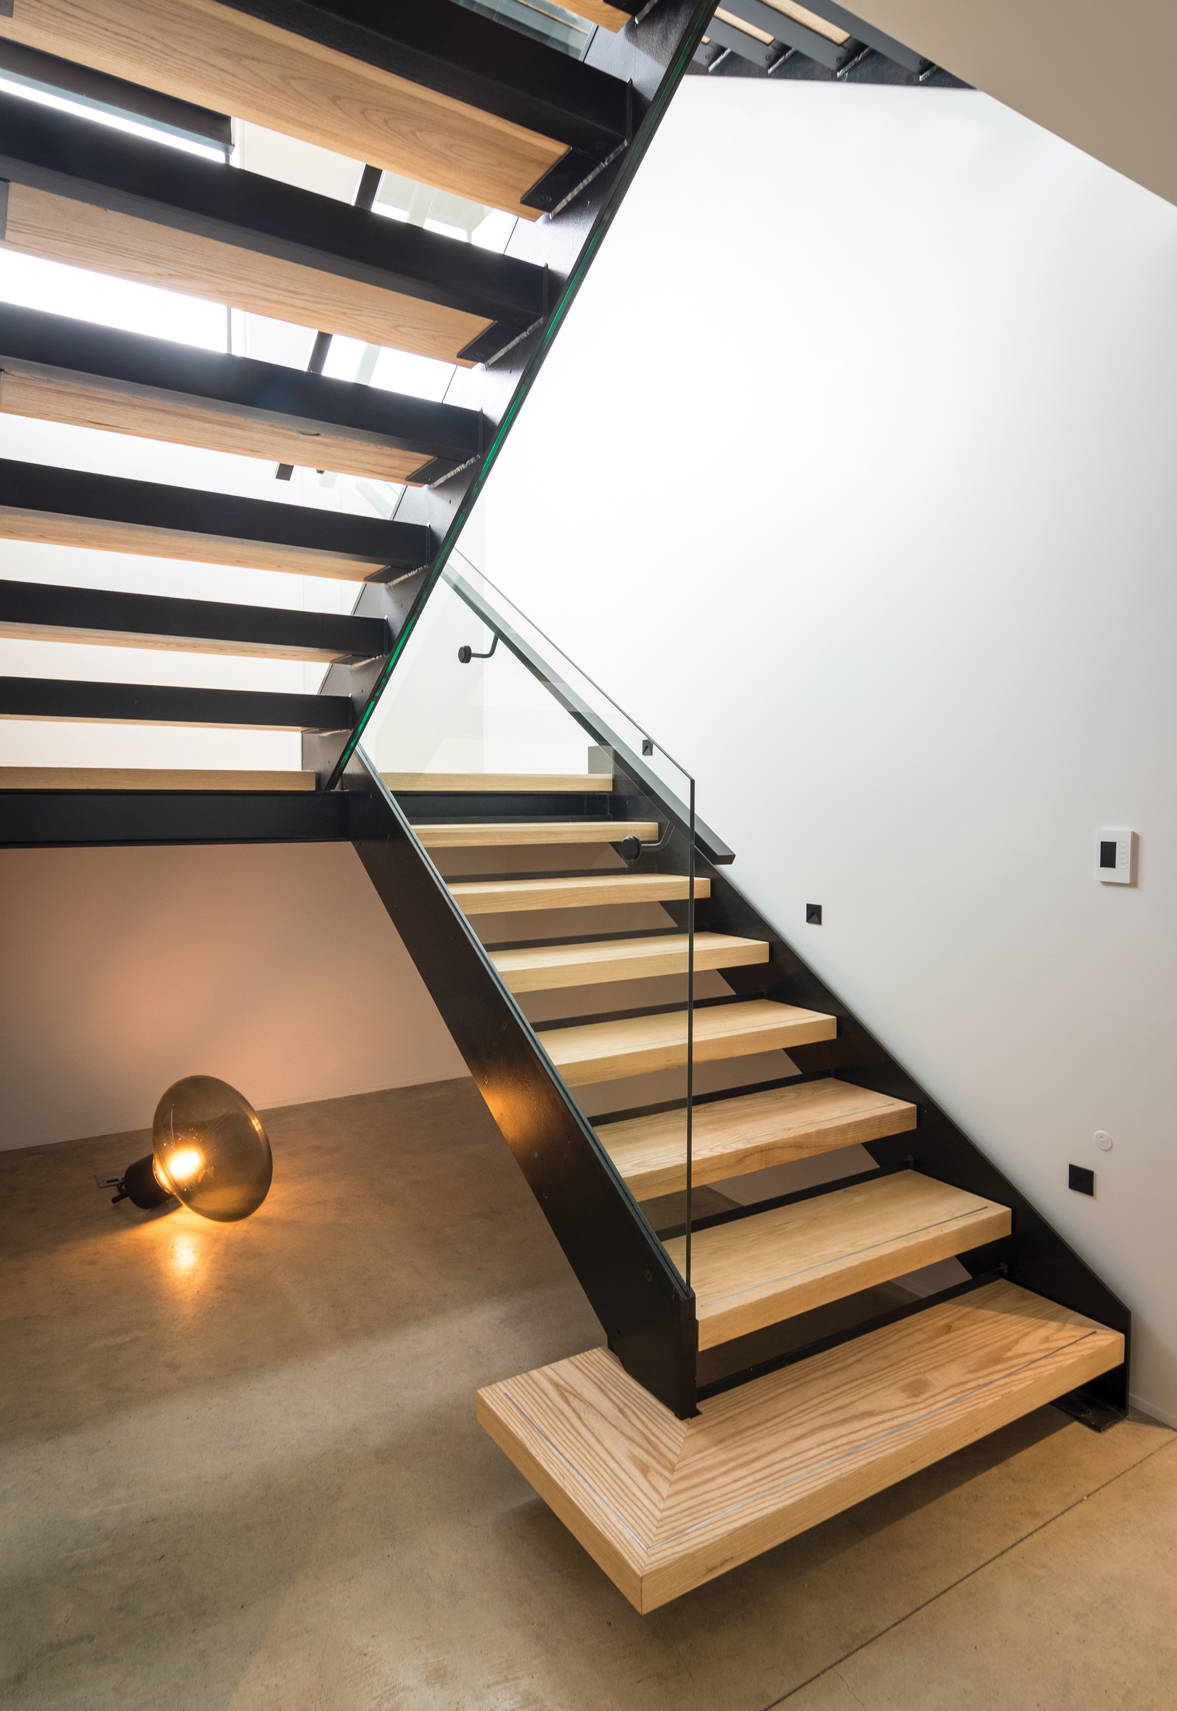 STAIRWELL:  Feature Brokis Muffin floor lamp from ECC in smoke grey glass. Custom-steel, frameless glass and laminated American oak staircase.